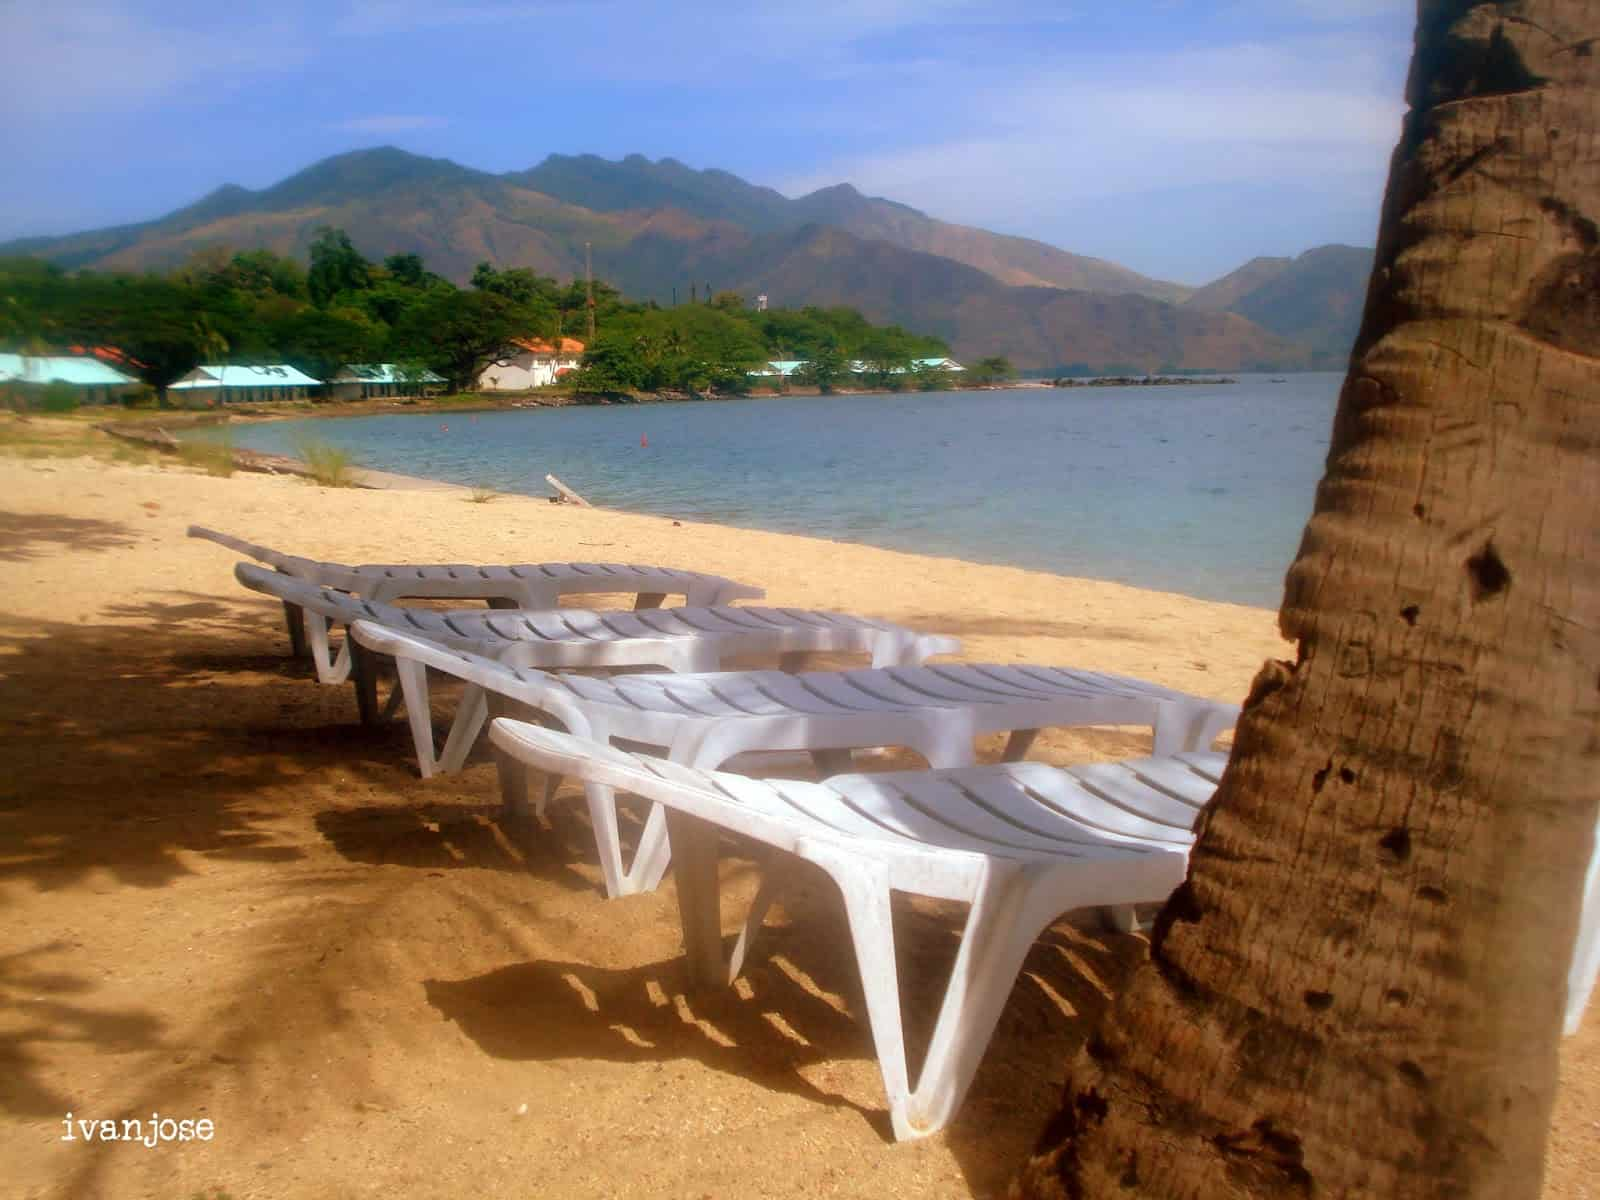 Beach benches at Grande Island Resort